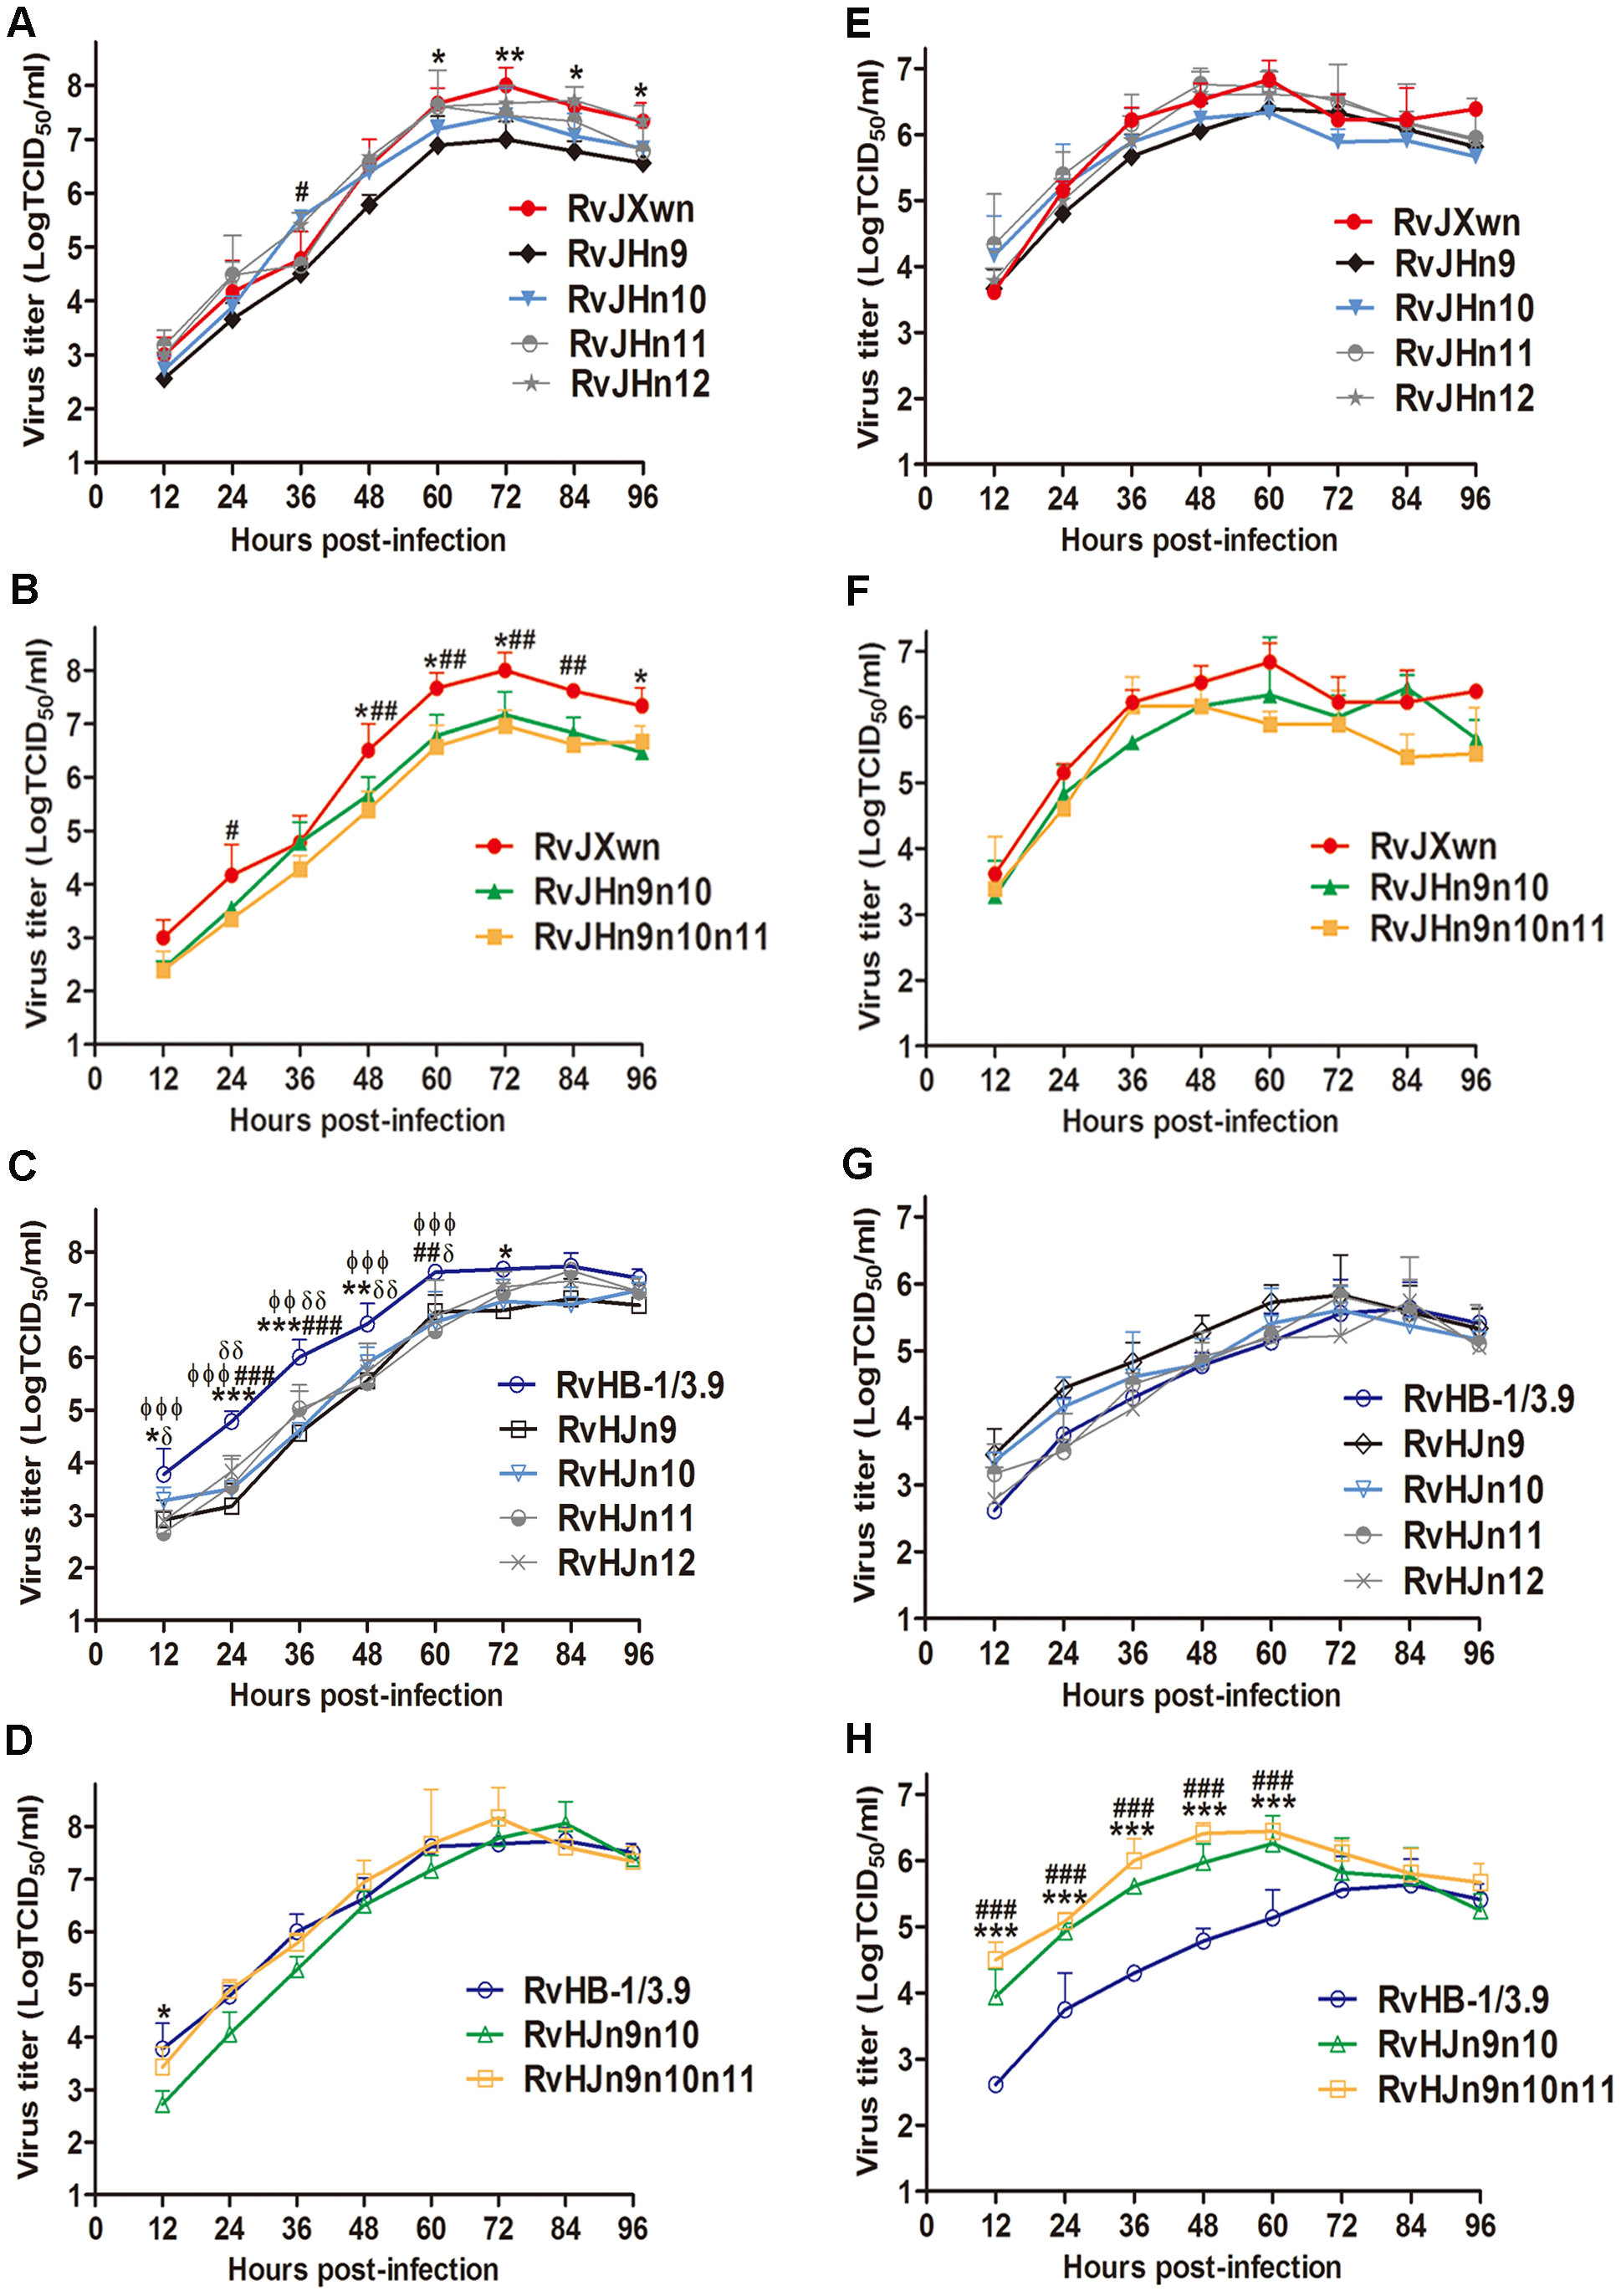 Growth kinetics of the rescued viruses with the exchanged Nsp-coding region within ORF1b.